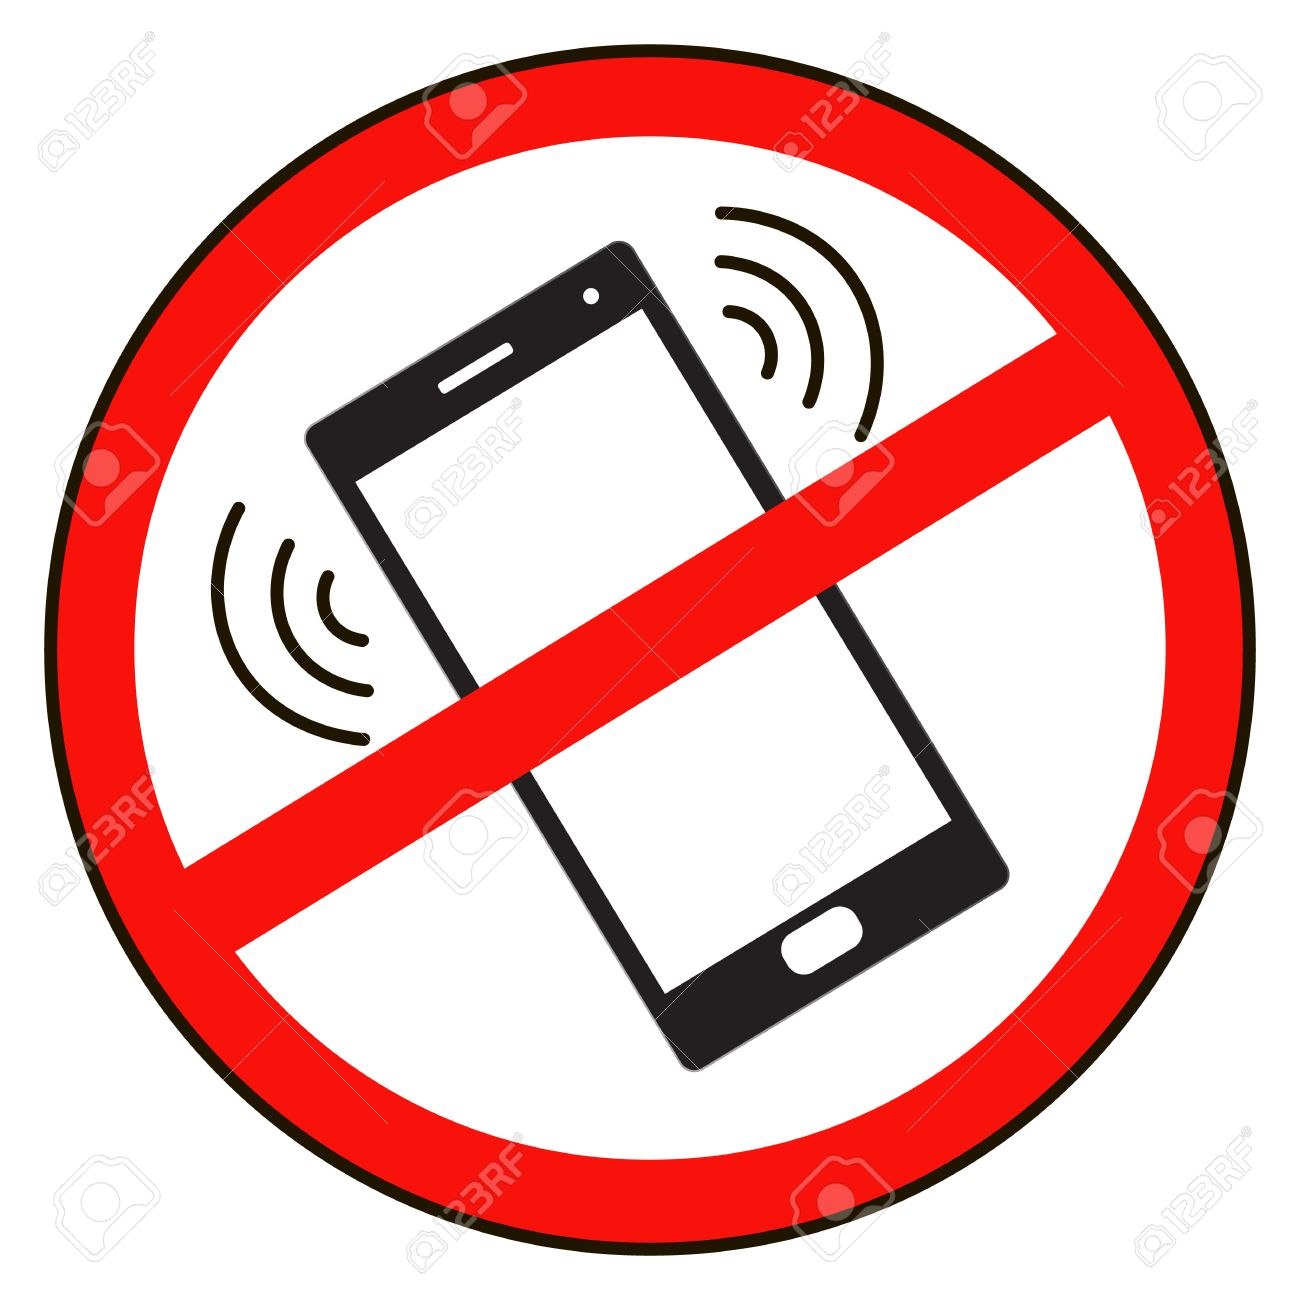 Mobile Phone Prohibited No Cell Phone Sign Isolated White